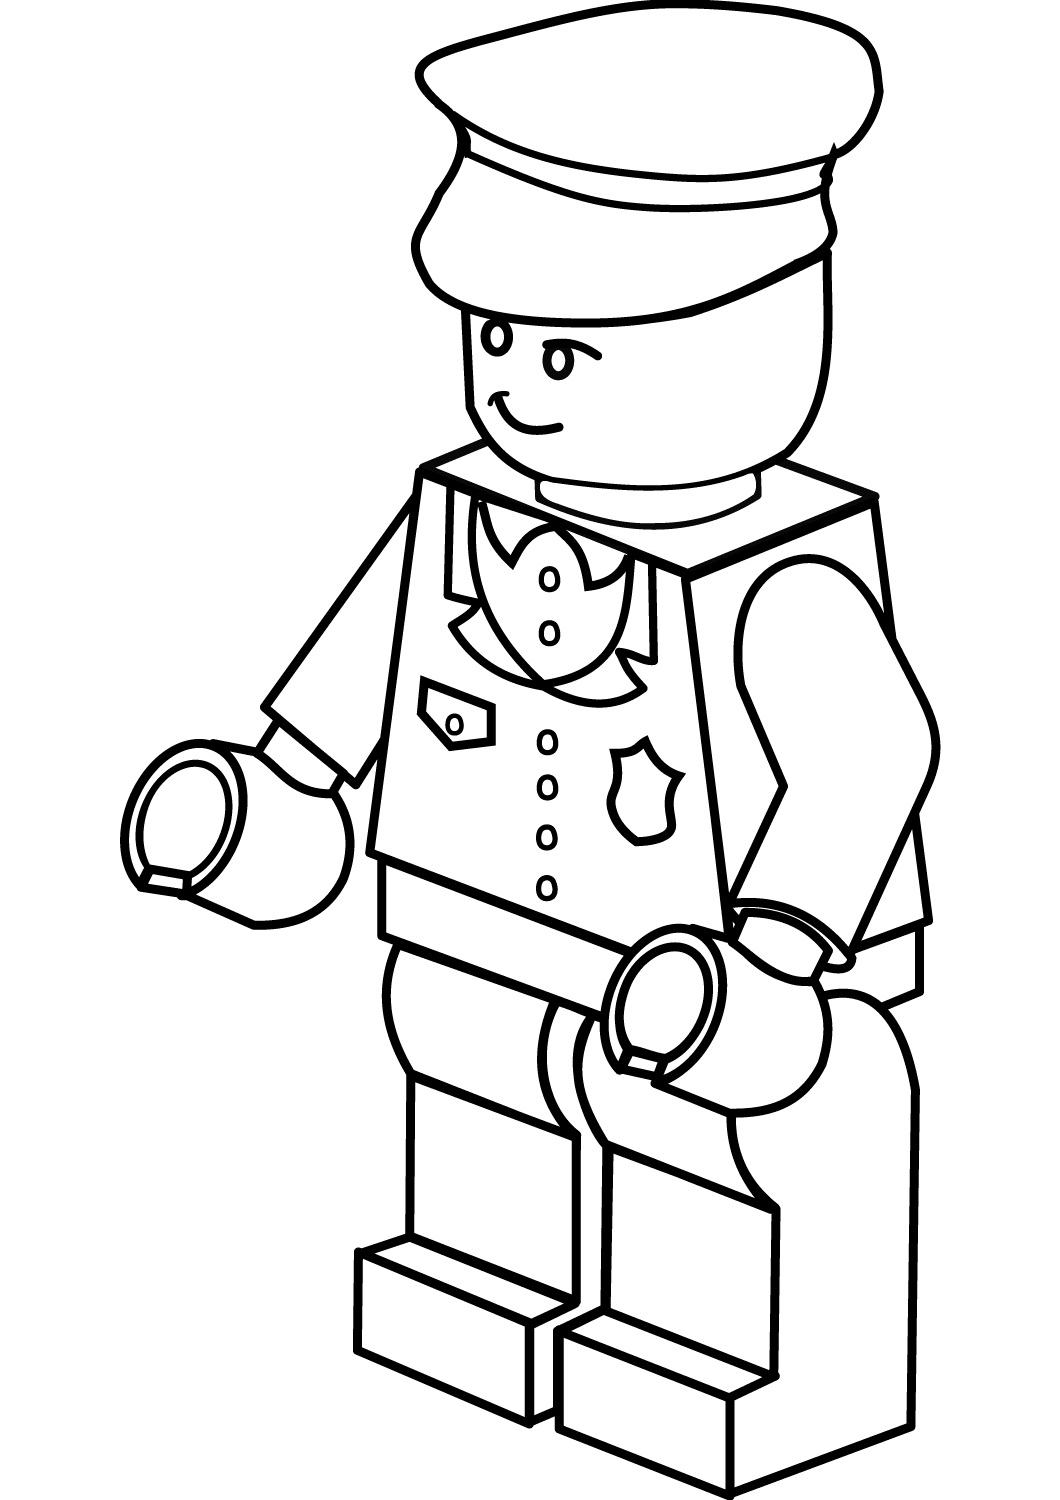 1060x1500 Coloring Pages For Kids And Adults Free Printable Lego Coloring